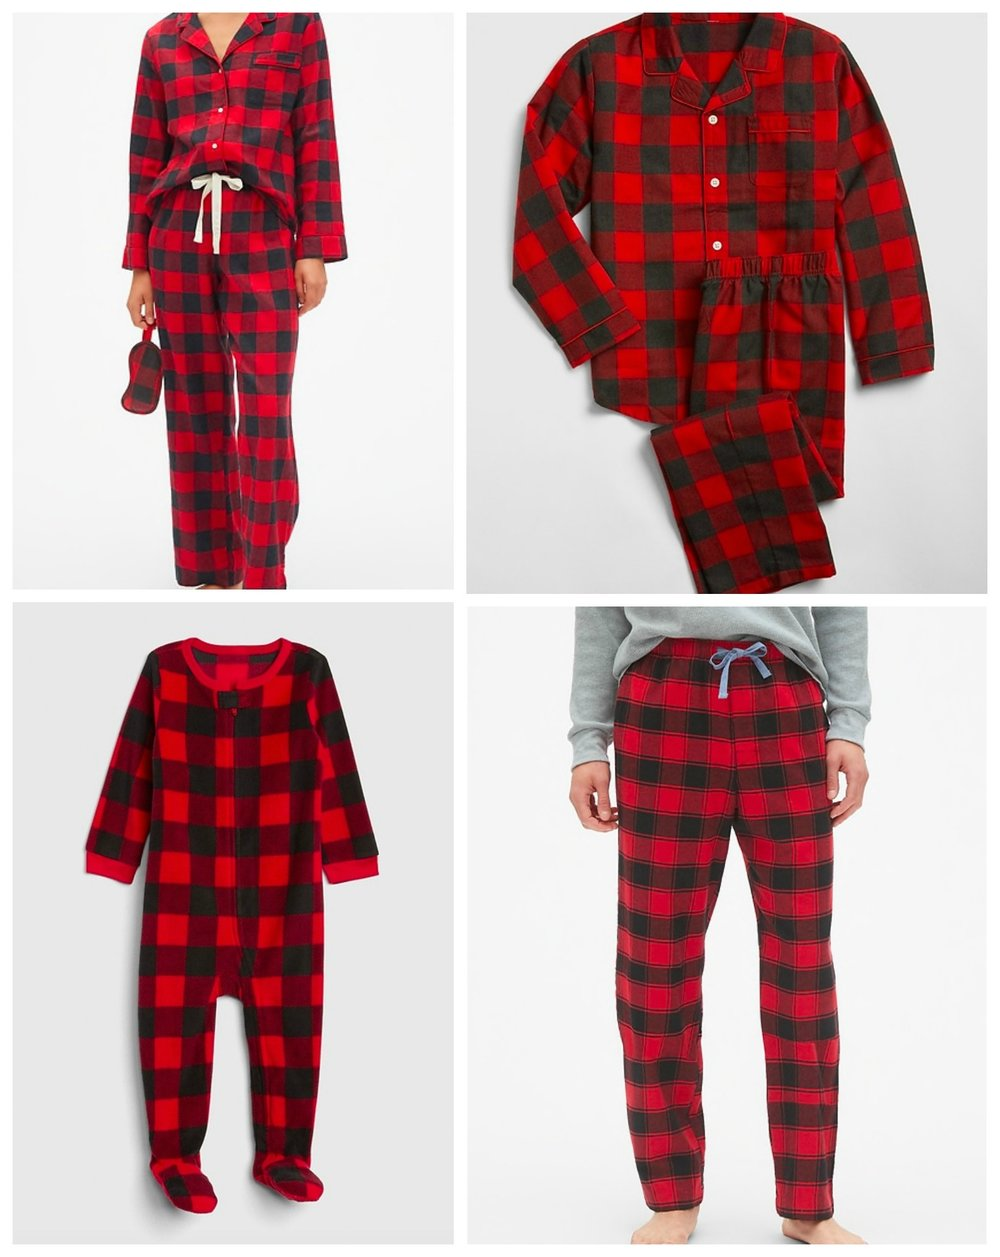 Red and black check pjs.jpg